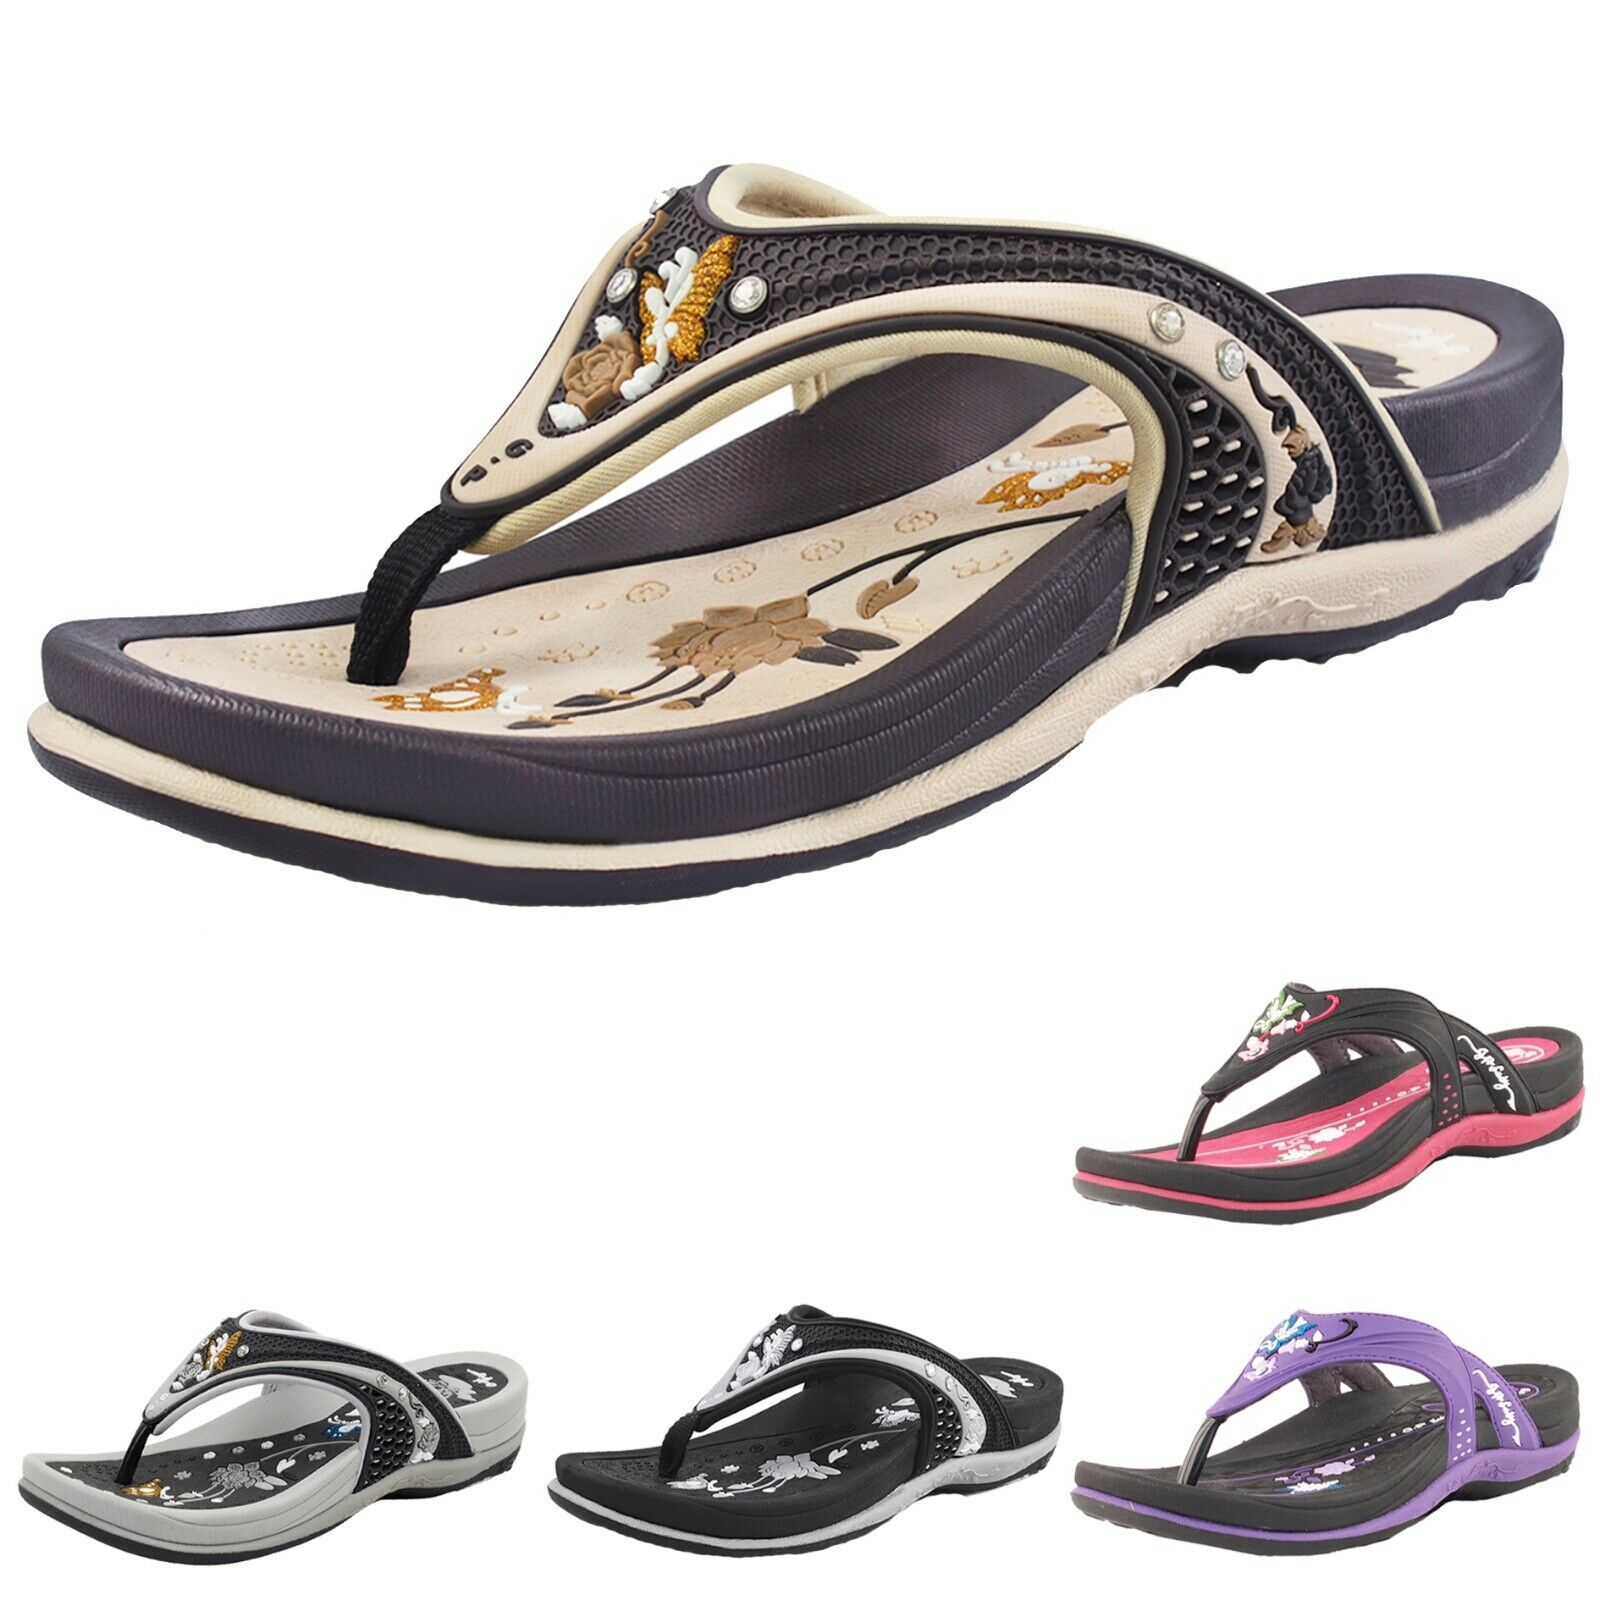 Comfort Ergonomic Slip-Resistant Waterproof Platform Cushion Flip Flops Sandals